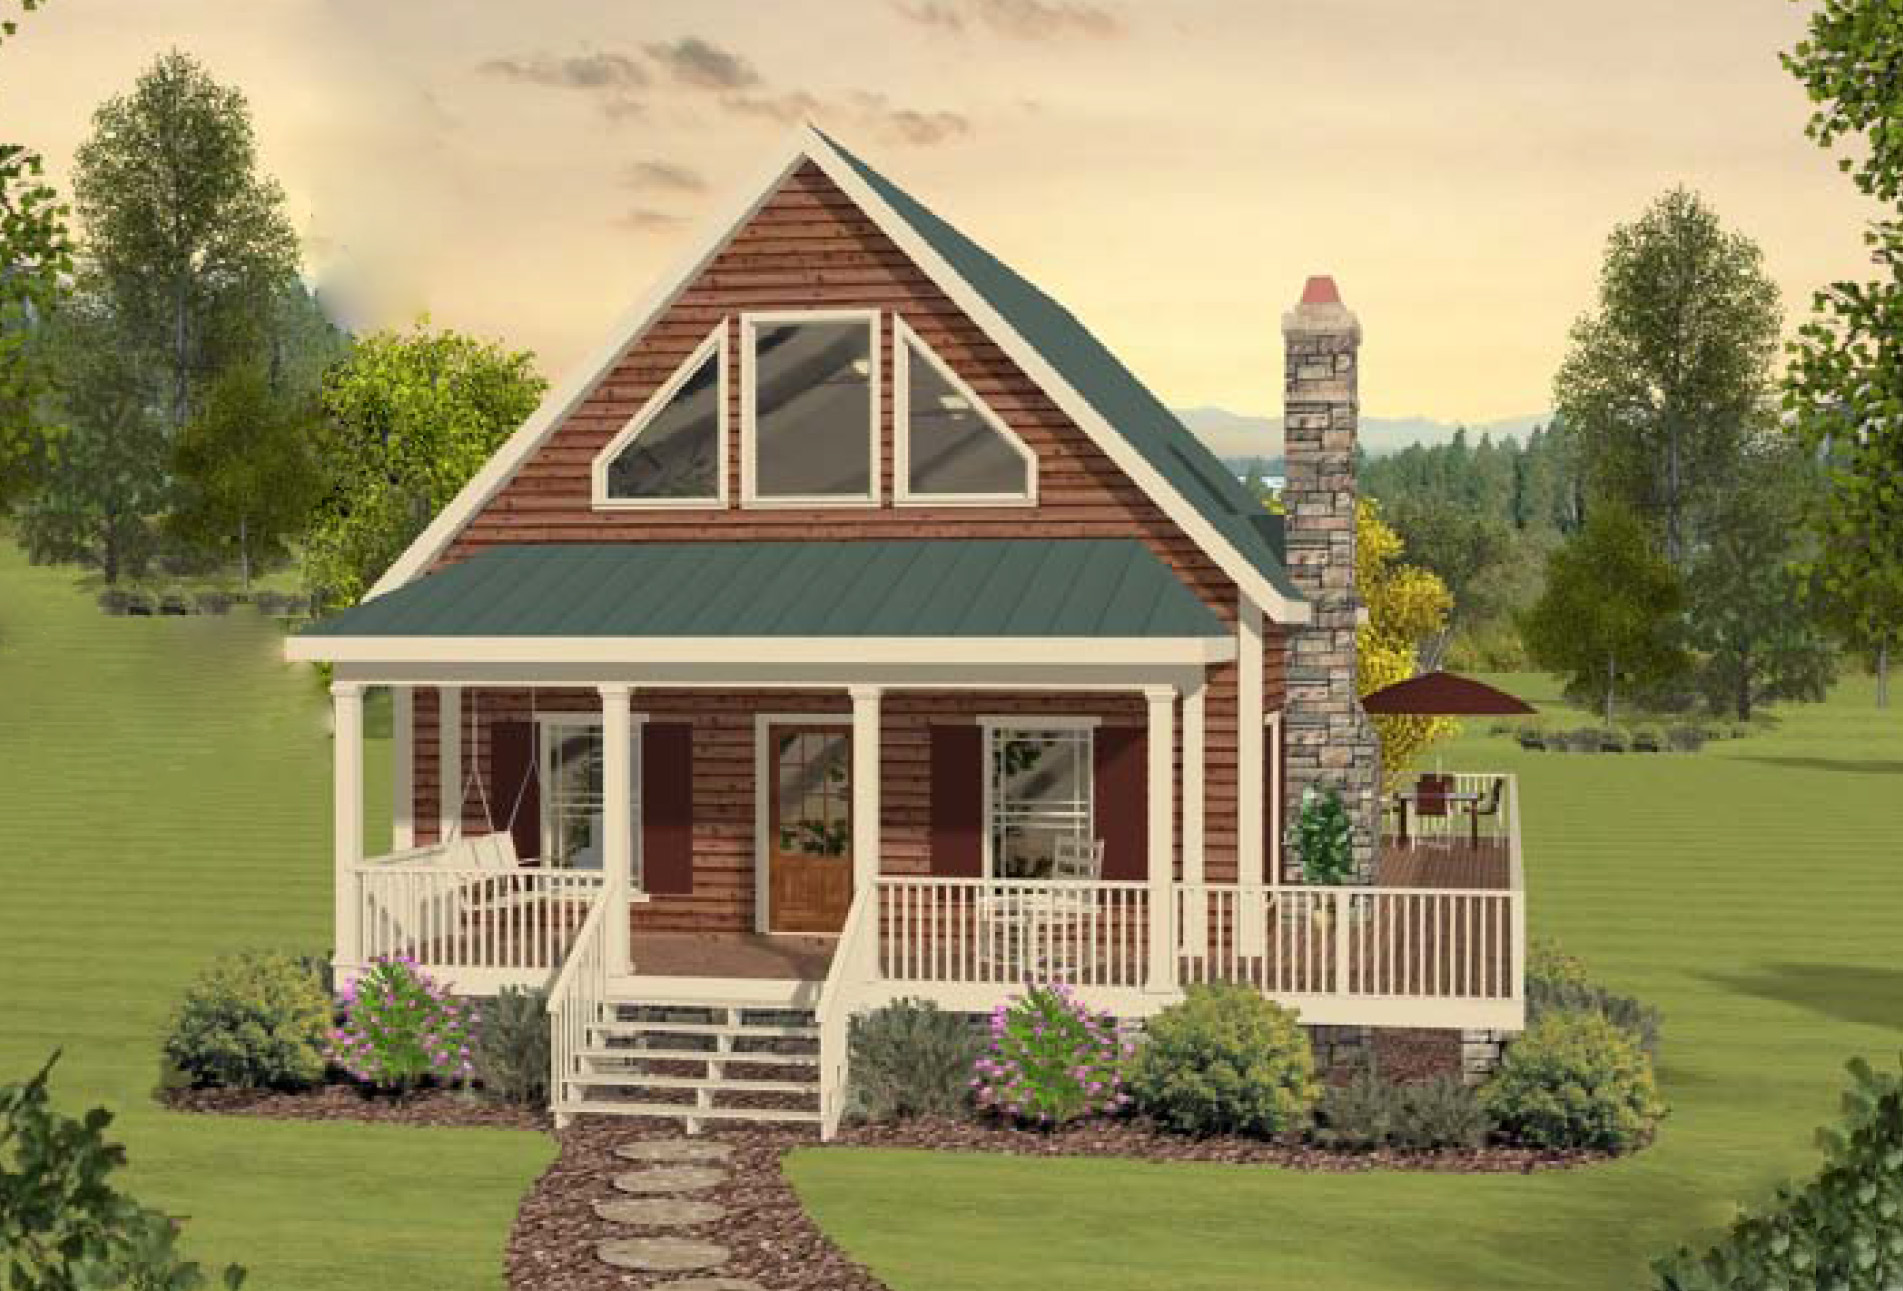 Two bedroom cottage home plan 20099ga 1st floor master for House plans with loft and wrap around porch